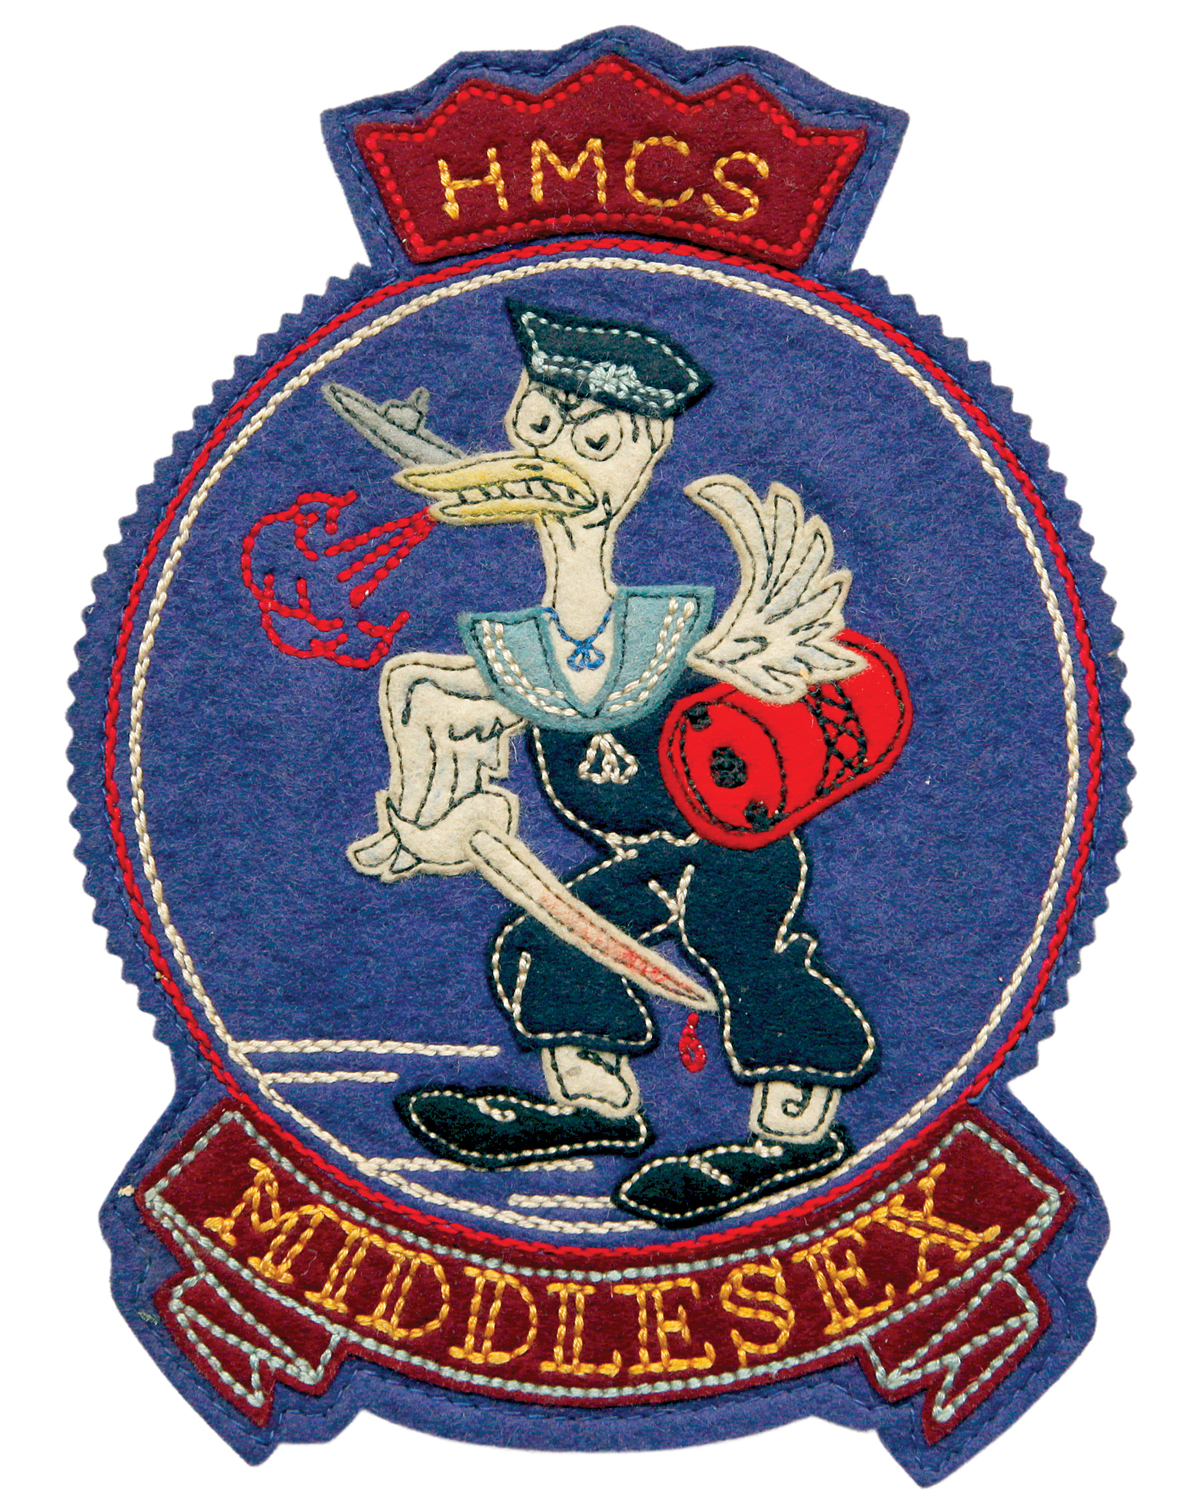 Photo of  H.M.C.S. Middlesex patch featuring a mascot by Lou Skuce